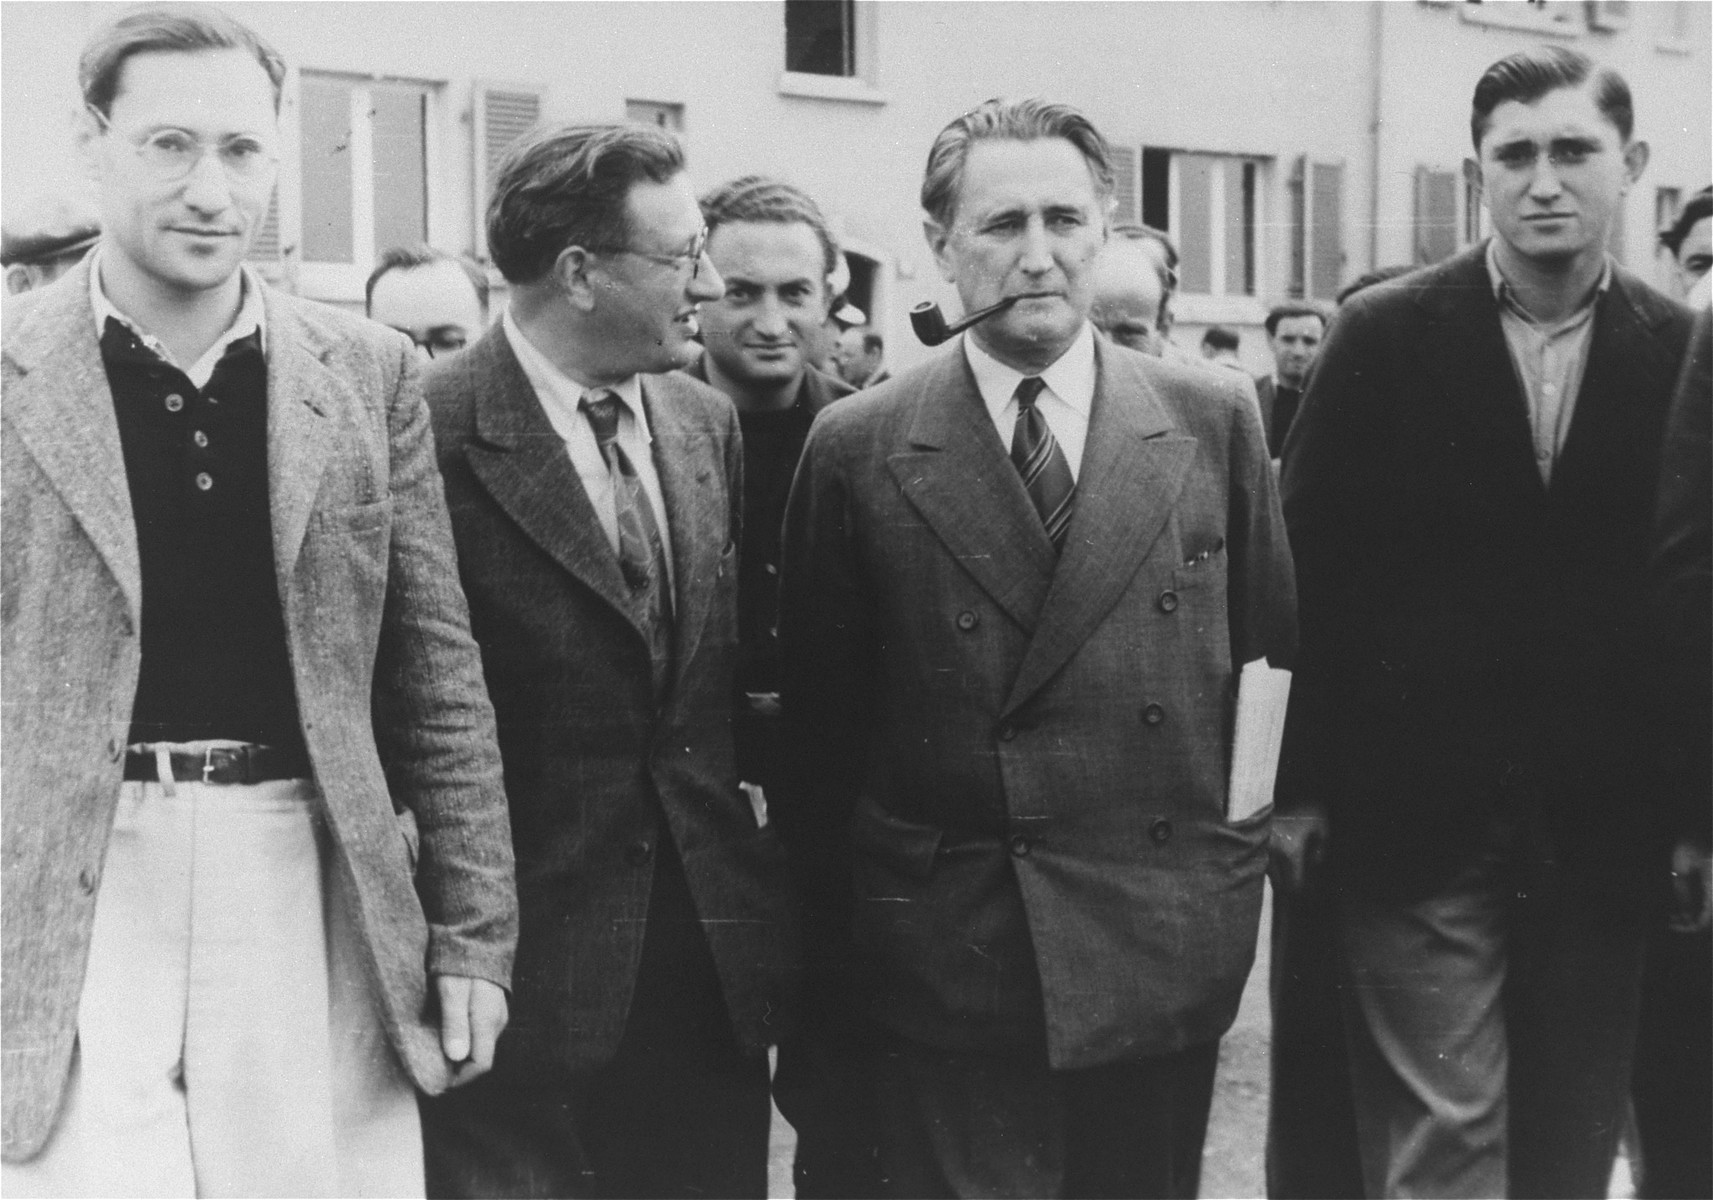 Zionist leader Nahum Goldmann tours the Zeilsheim displaced persons camp.